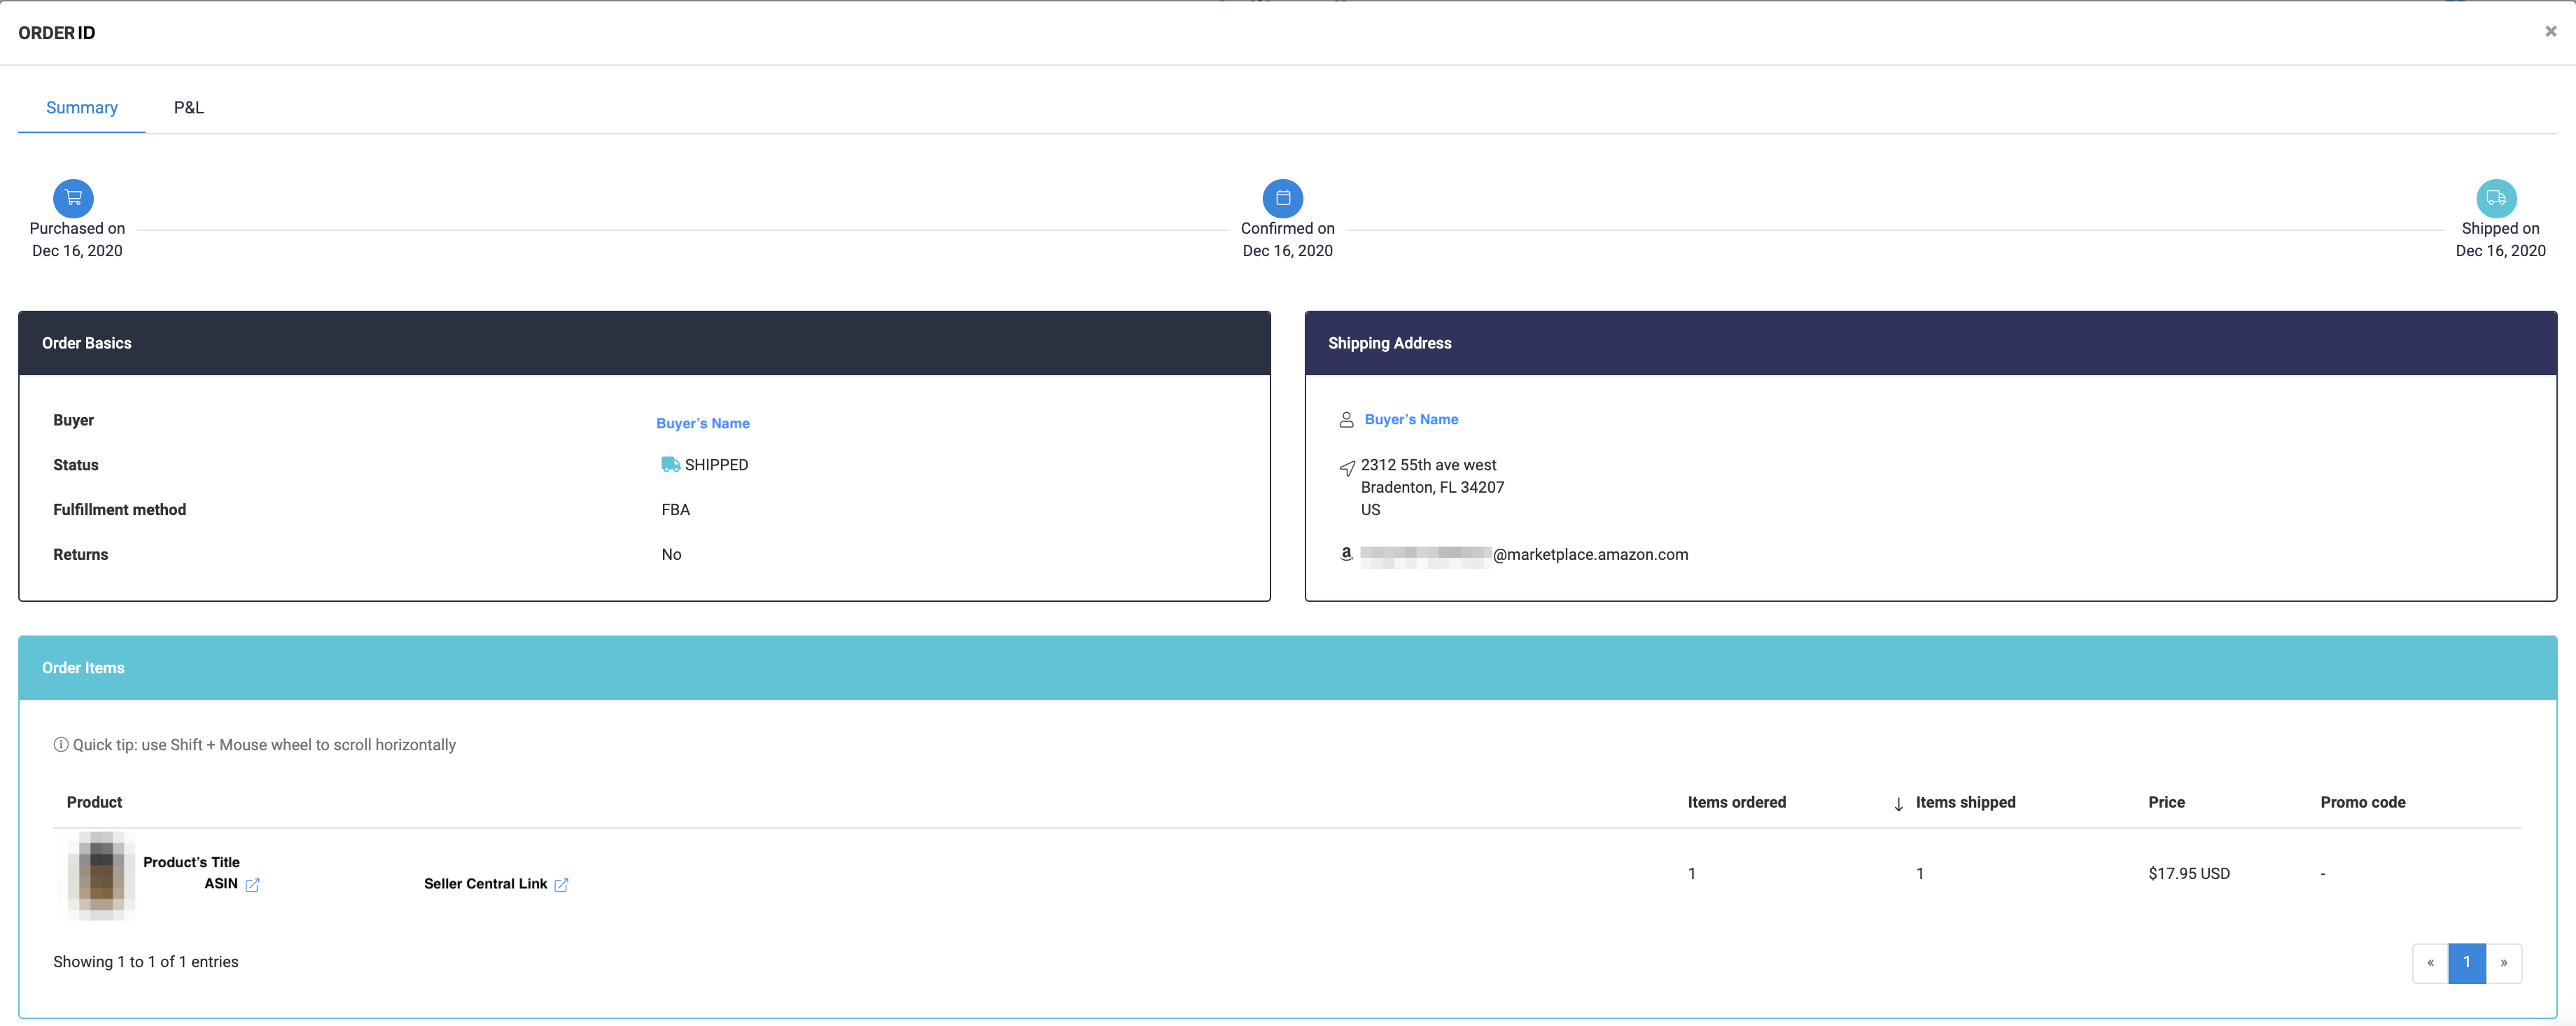 How to use Orders Manager - Order Information